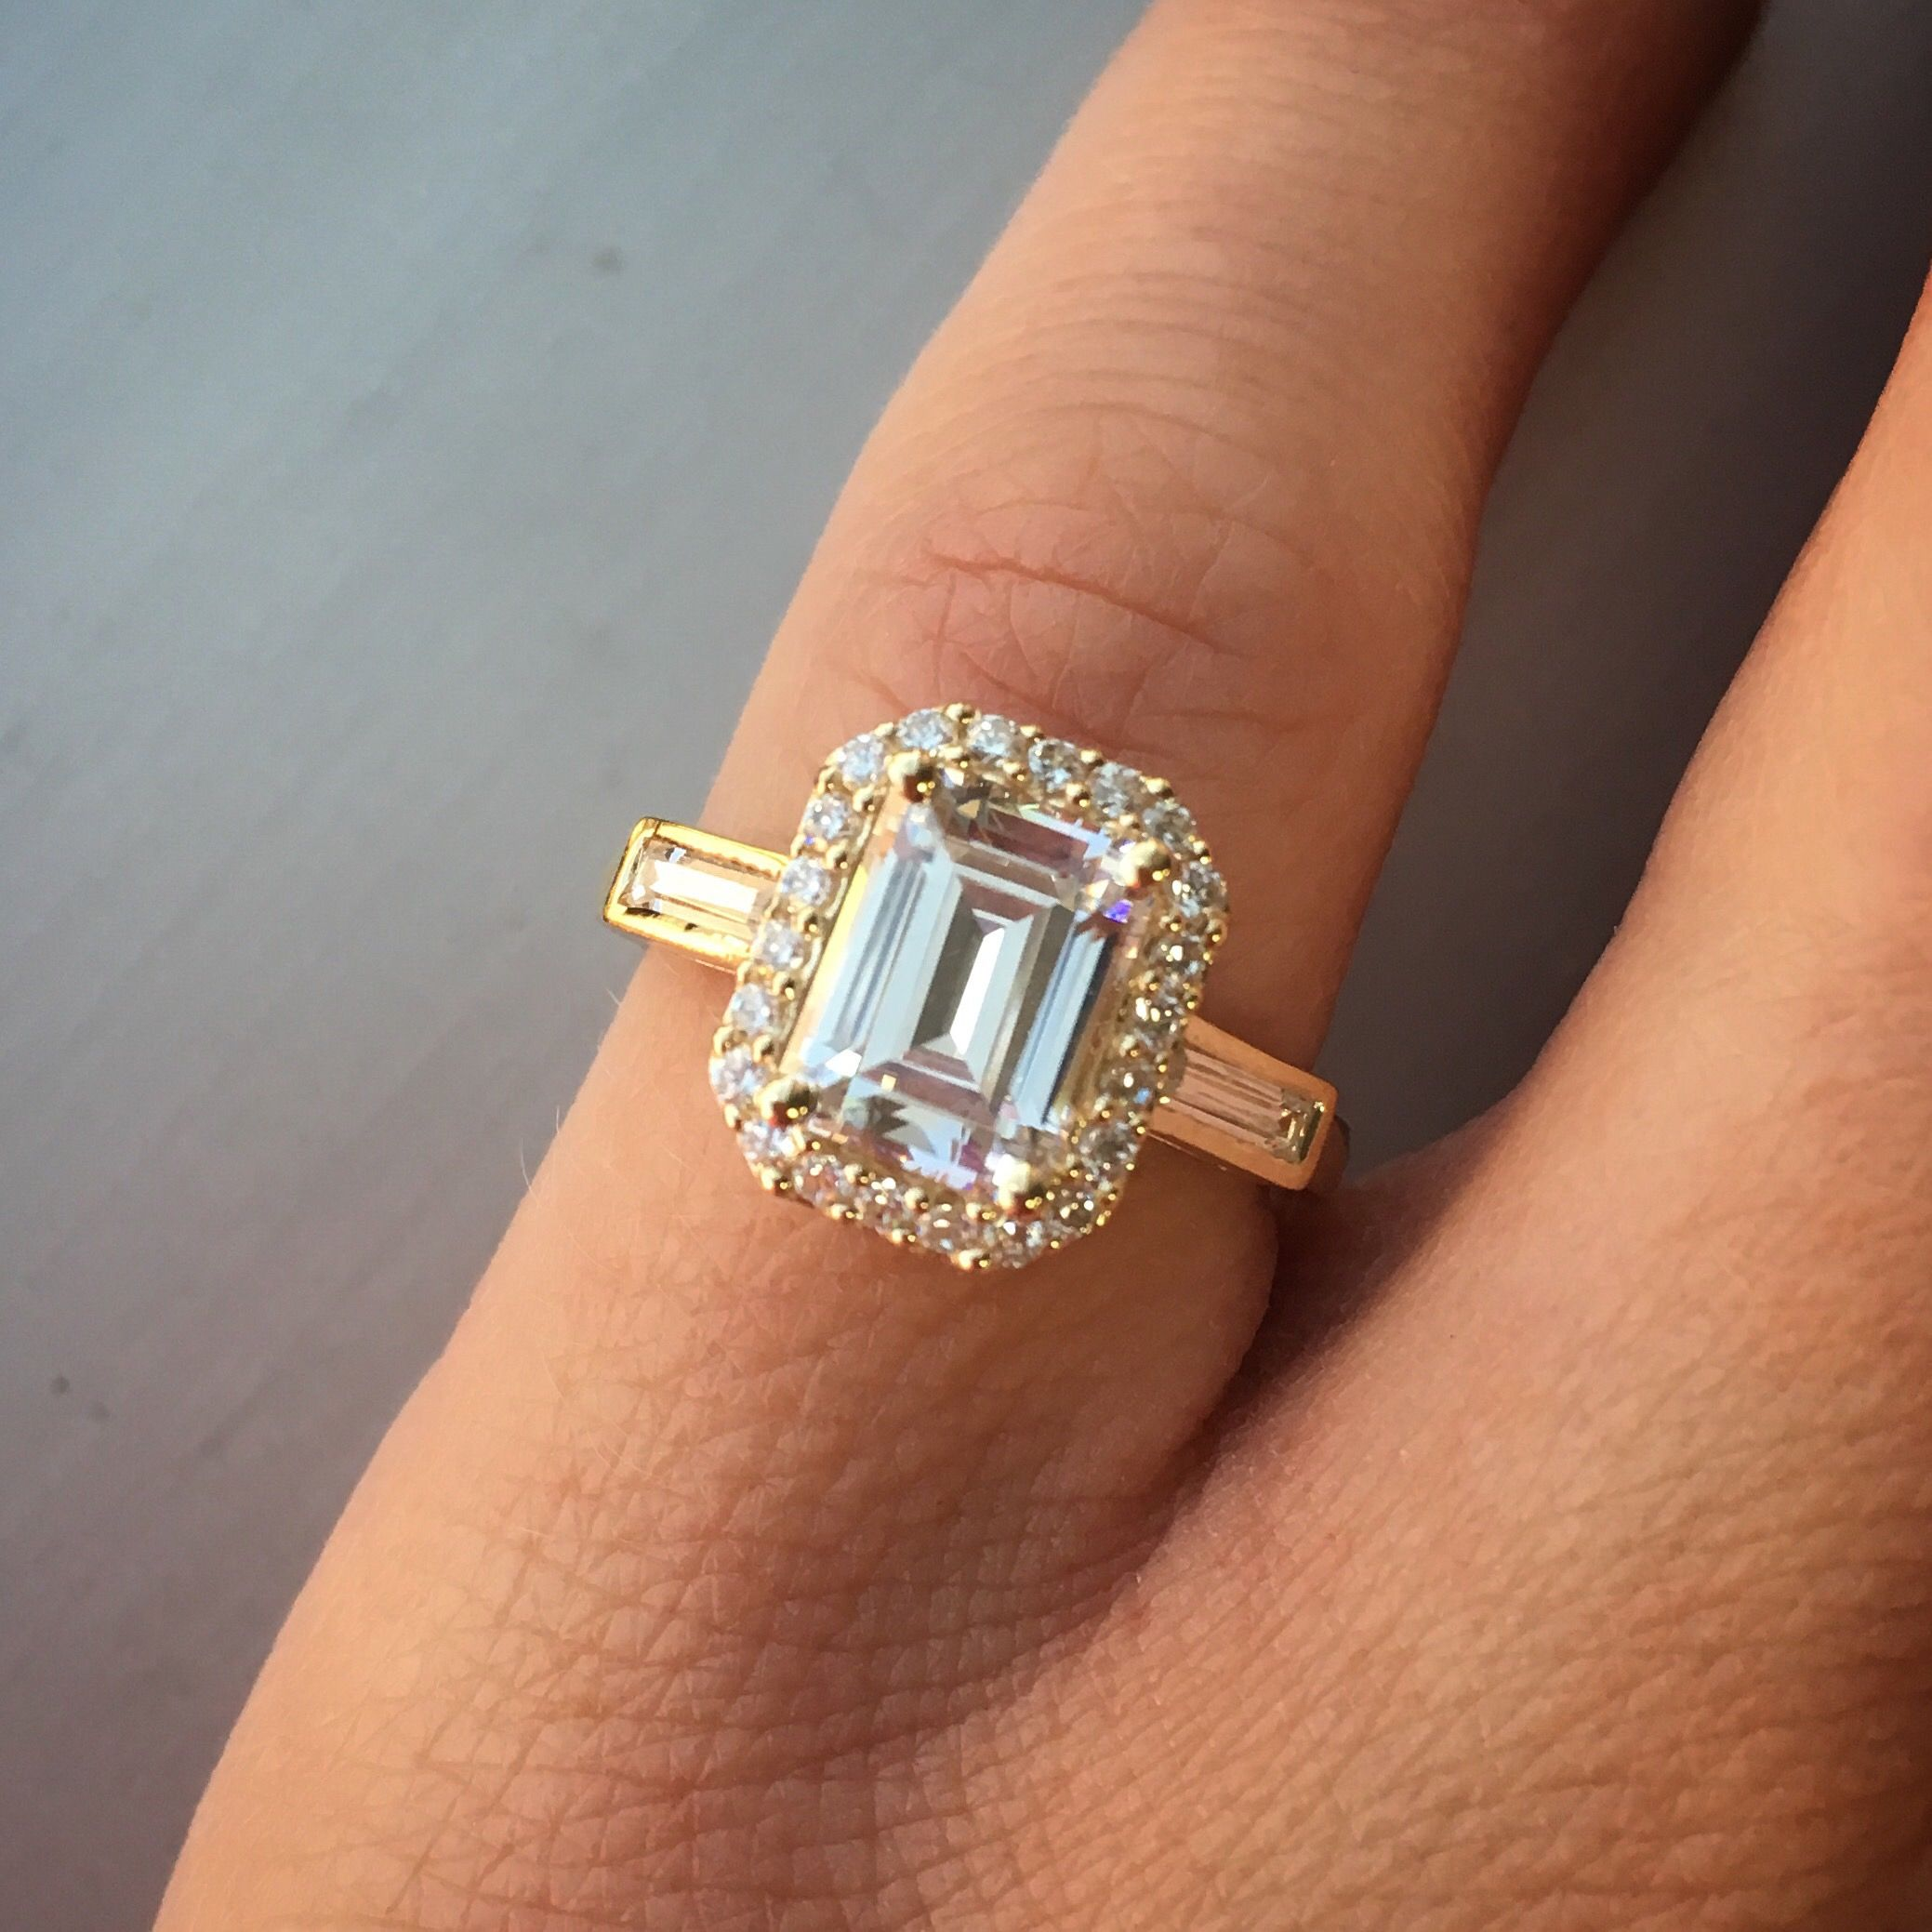 Emerald cut diamond engagement ring with pave diamond halo and